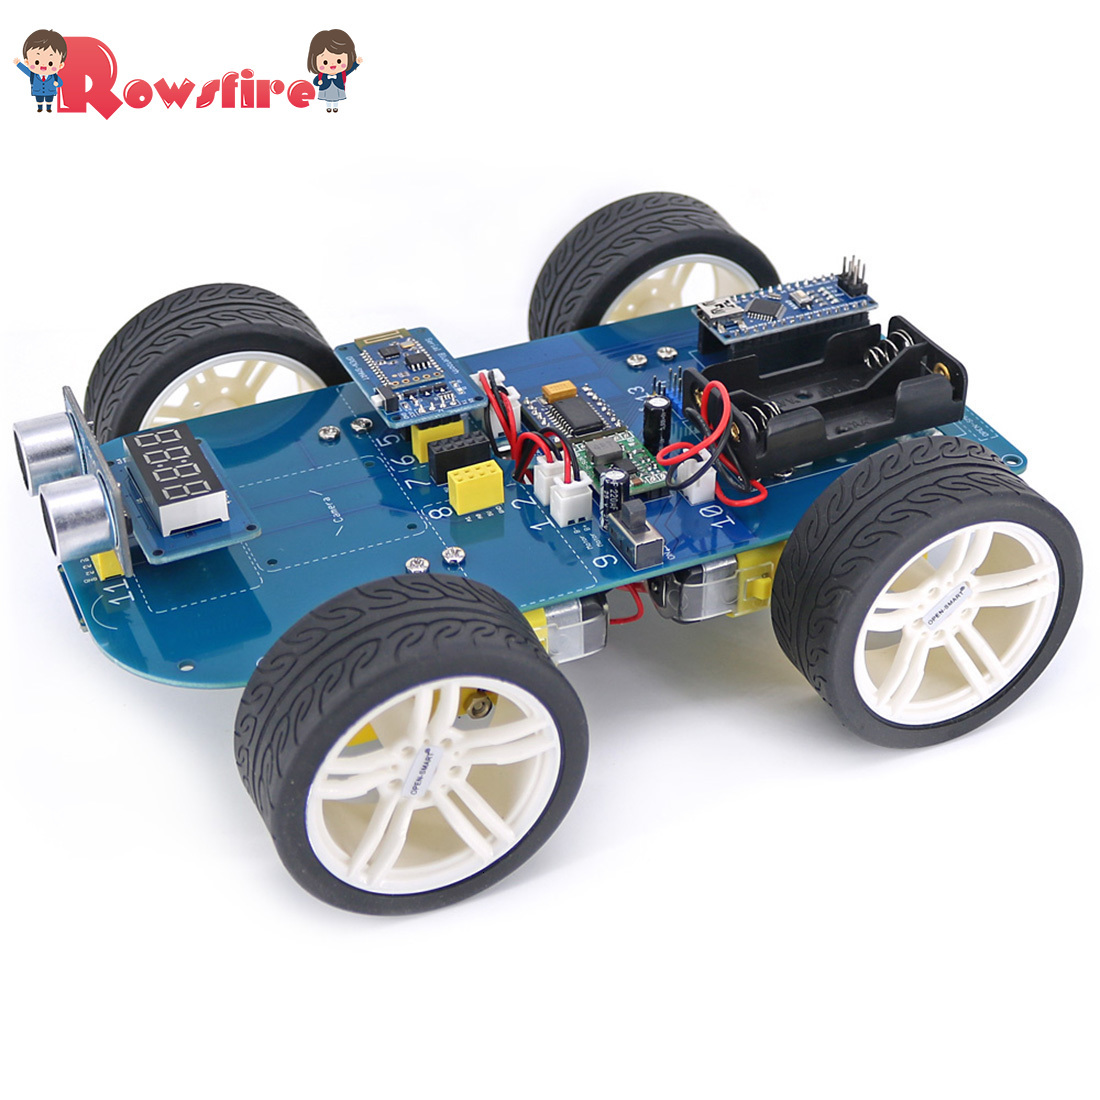 Rowsfire High-tech Programmable Boys 4wd Bluetooth Smart Car Ultrasonic Display And Obstacle Avoidance Kit +tutorial For Arduino